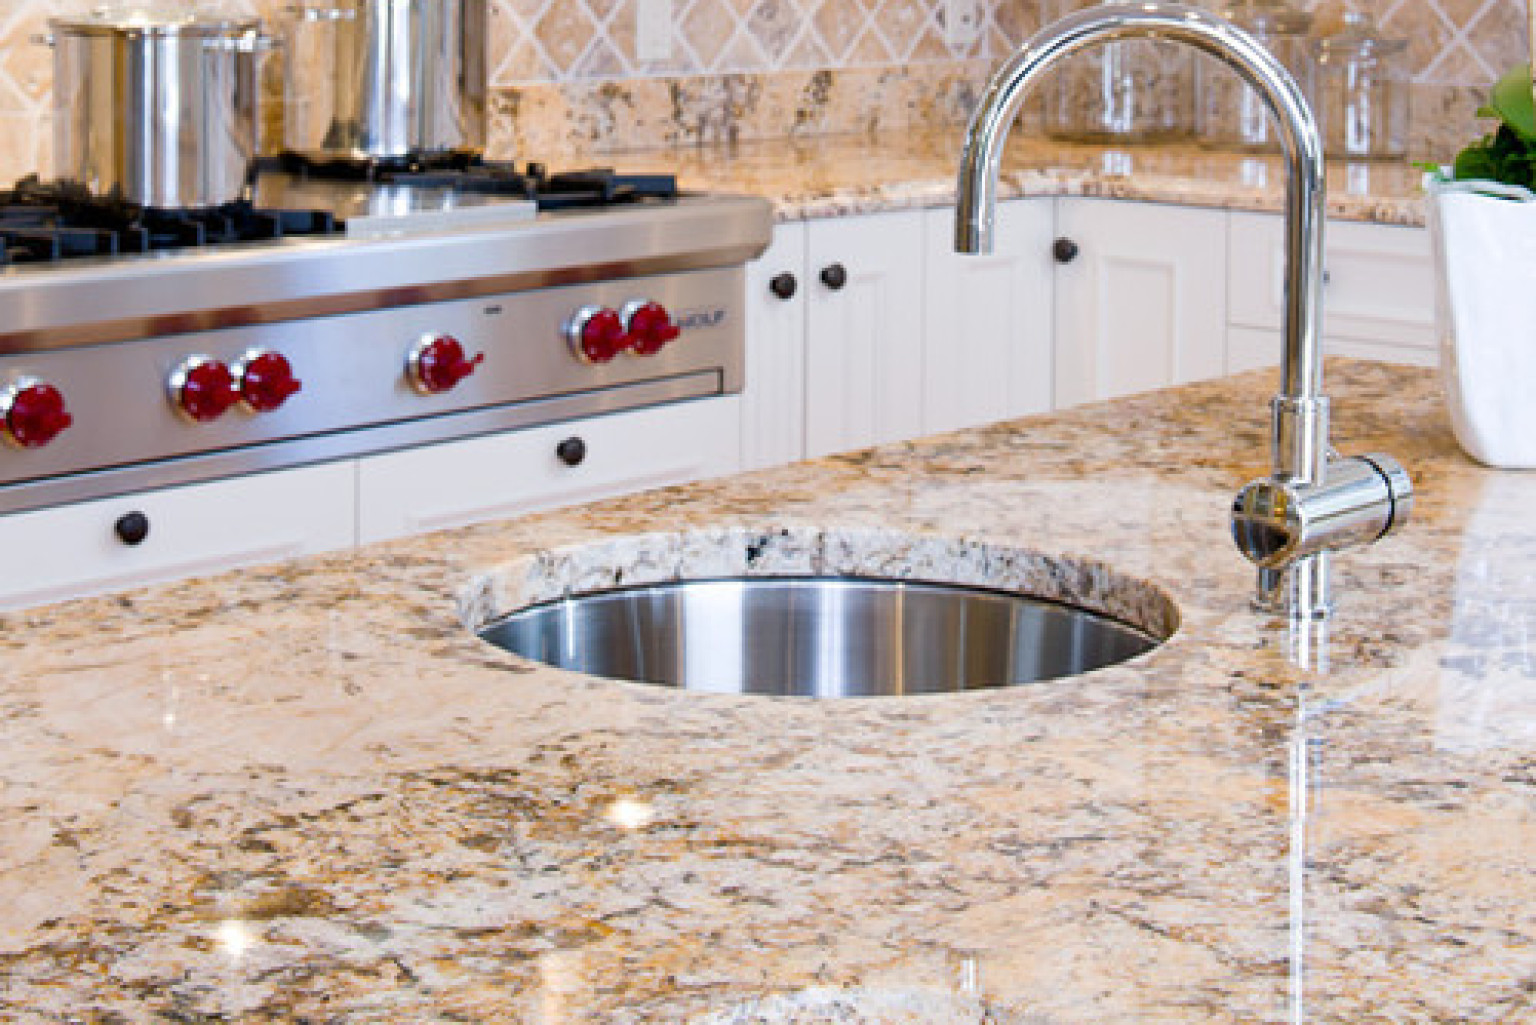 kitchen countertops buying guide n types of kitchen countertops Kitchen Countertops Buying Guide The Ins And Outs Of The Best Options On The Market PHOTOS HuffPost